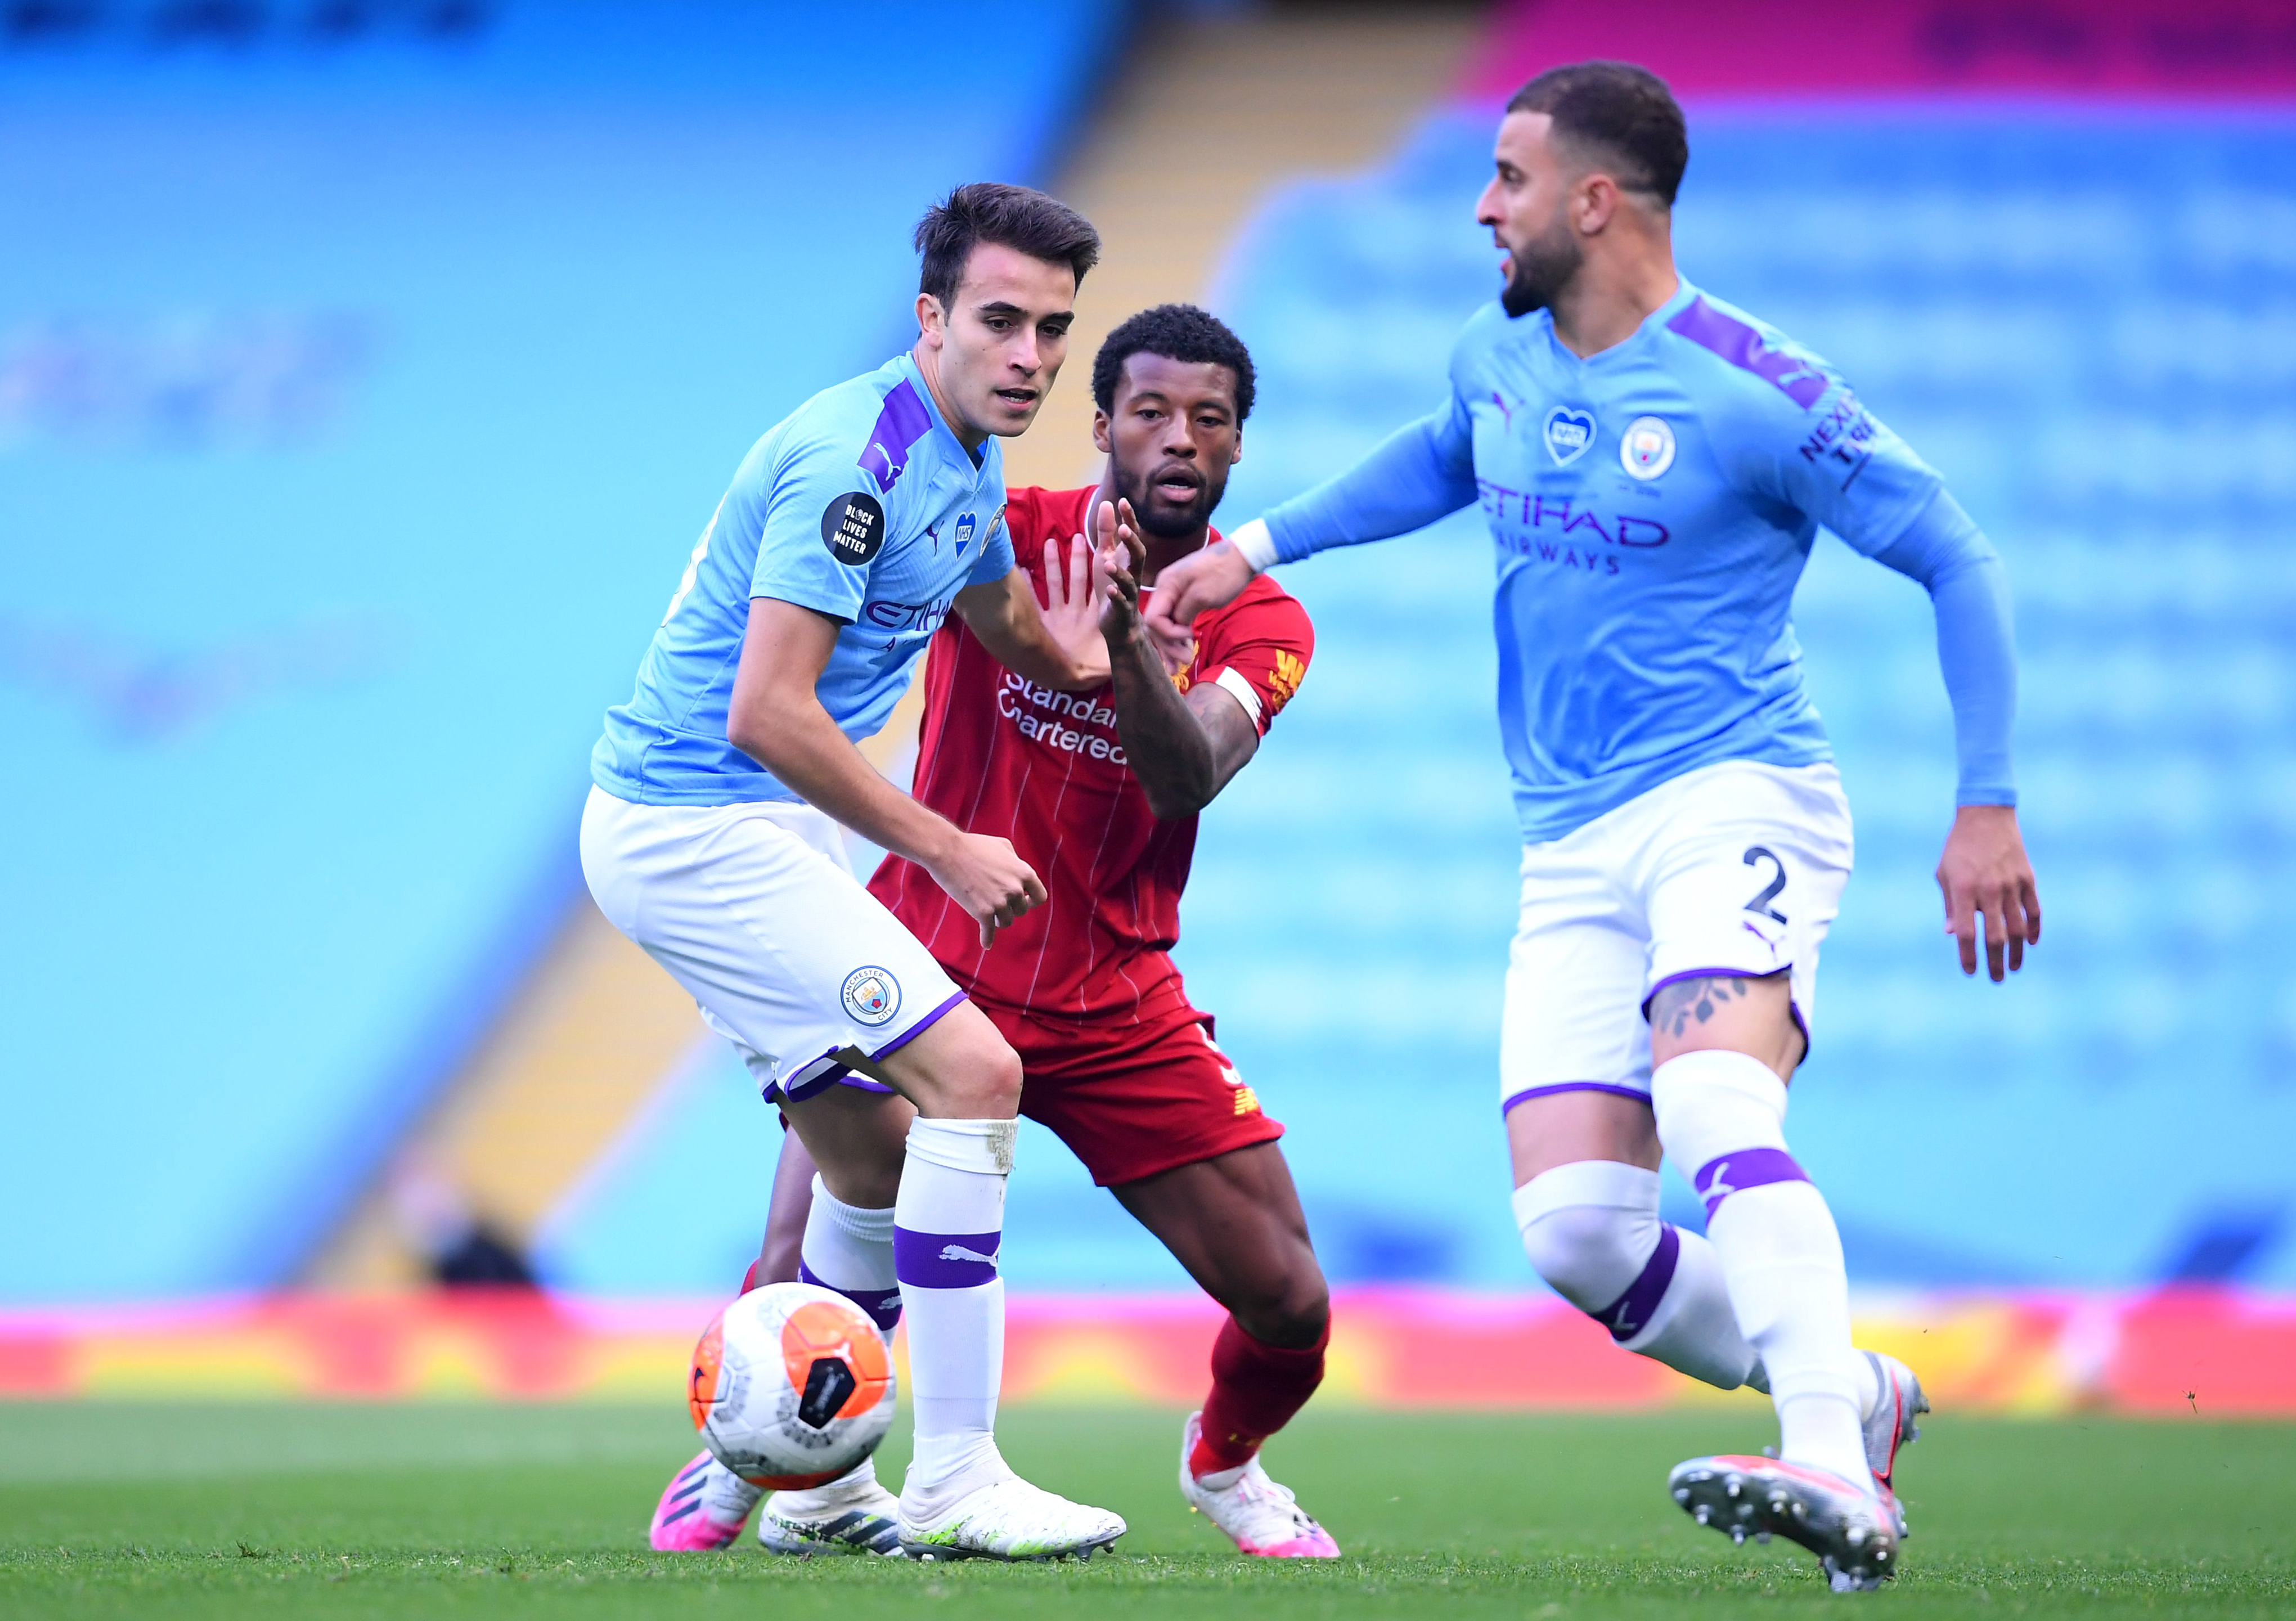 Liverpool's Wijnaldum gathering interest from Barcelona and Inter (Wijnaldum is in action in the picture)